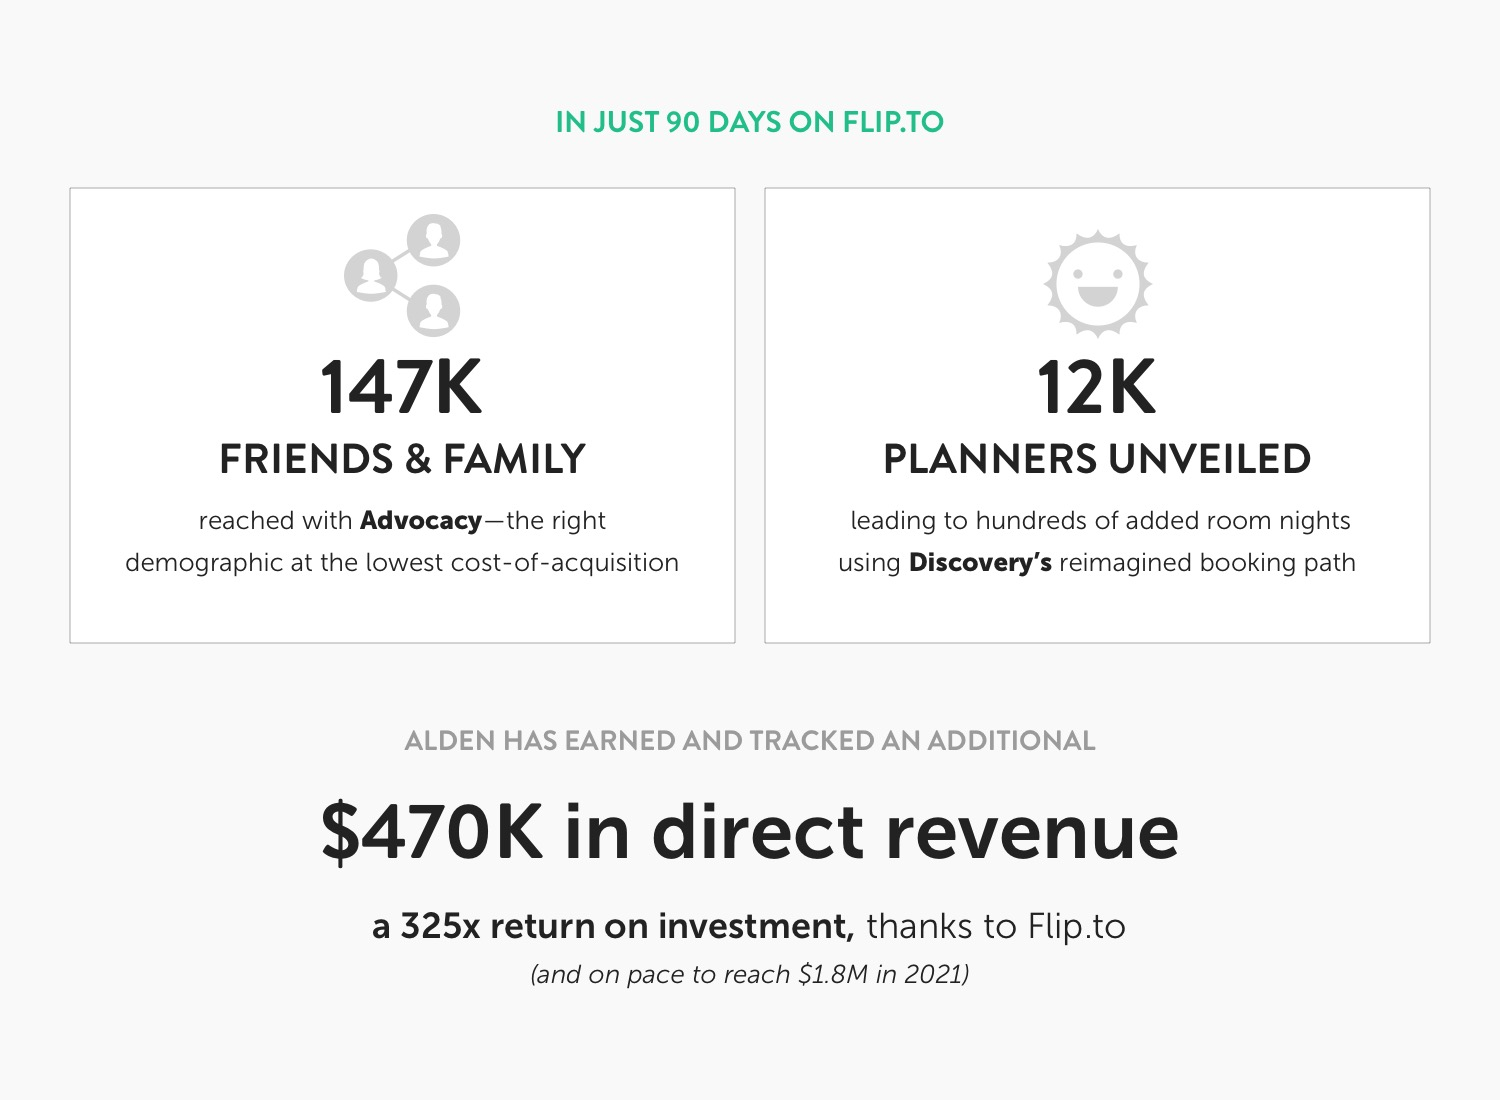 IN JUST 90 DAYS ON FLIP.TO 147K Friends and family reached with Advocacy—the right demographic at the lowest cost-of-acquisition 12K Planners unveiled, leading to hundreds of added room nights using Discovery's reimagined booking path ALDEN HAS EARNED AND TRACKED AN ADDITIONAL $470K in direct revenue a 325x return on investment, thanks to Flip.to and on pace to reach $1.8M in 2021